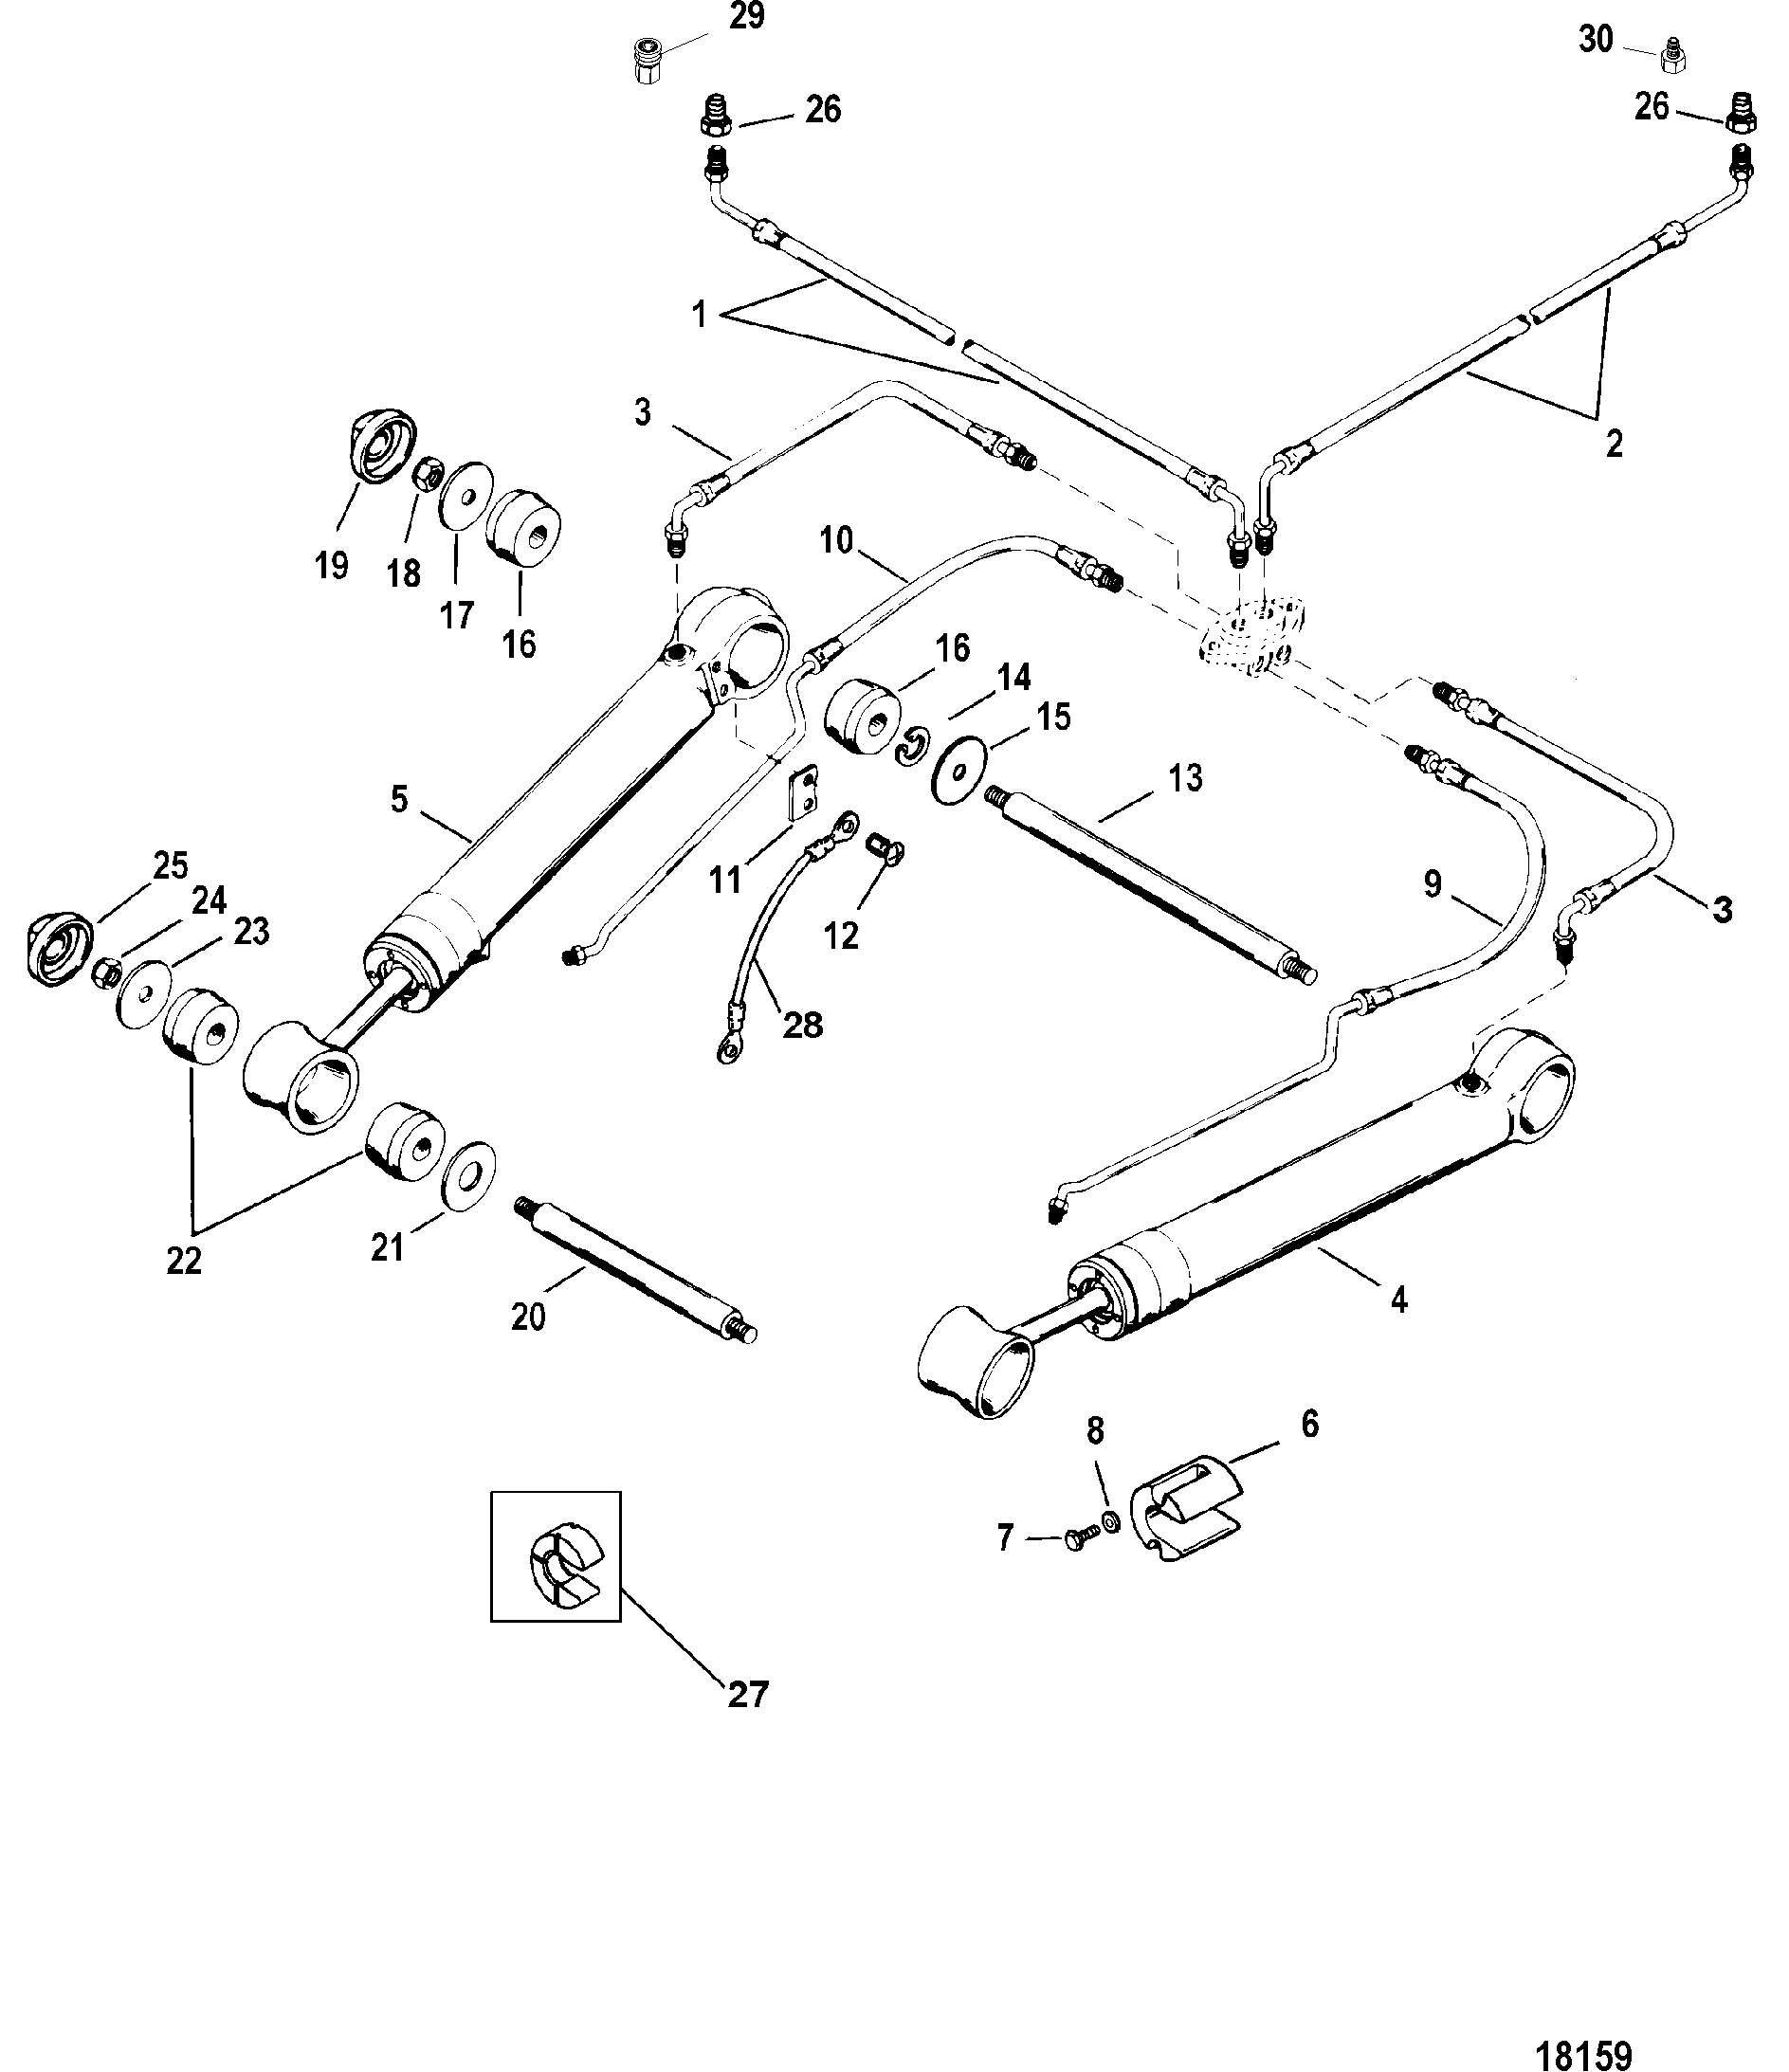 hight resolution of mercury mercruiser bravo xr one 0l914990 thru 0w239999 trim rh vansoutboardparts com mercury outboard diagram tilt and trim johnson tilt trim diagram